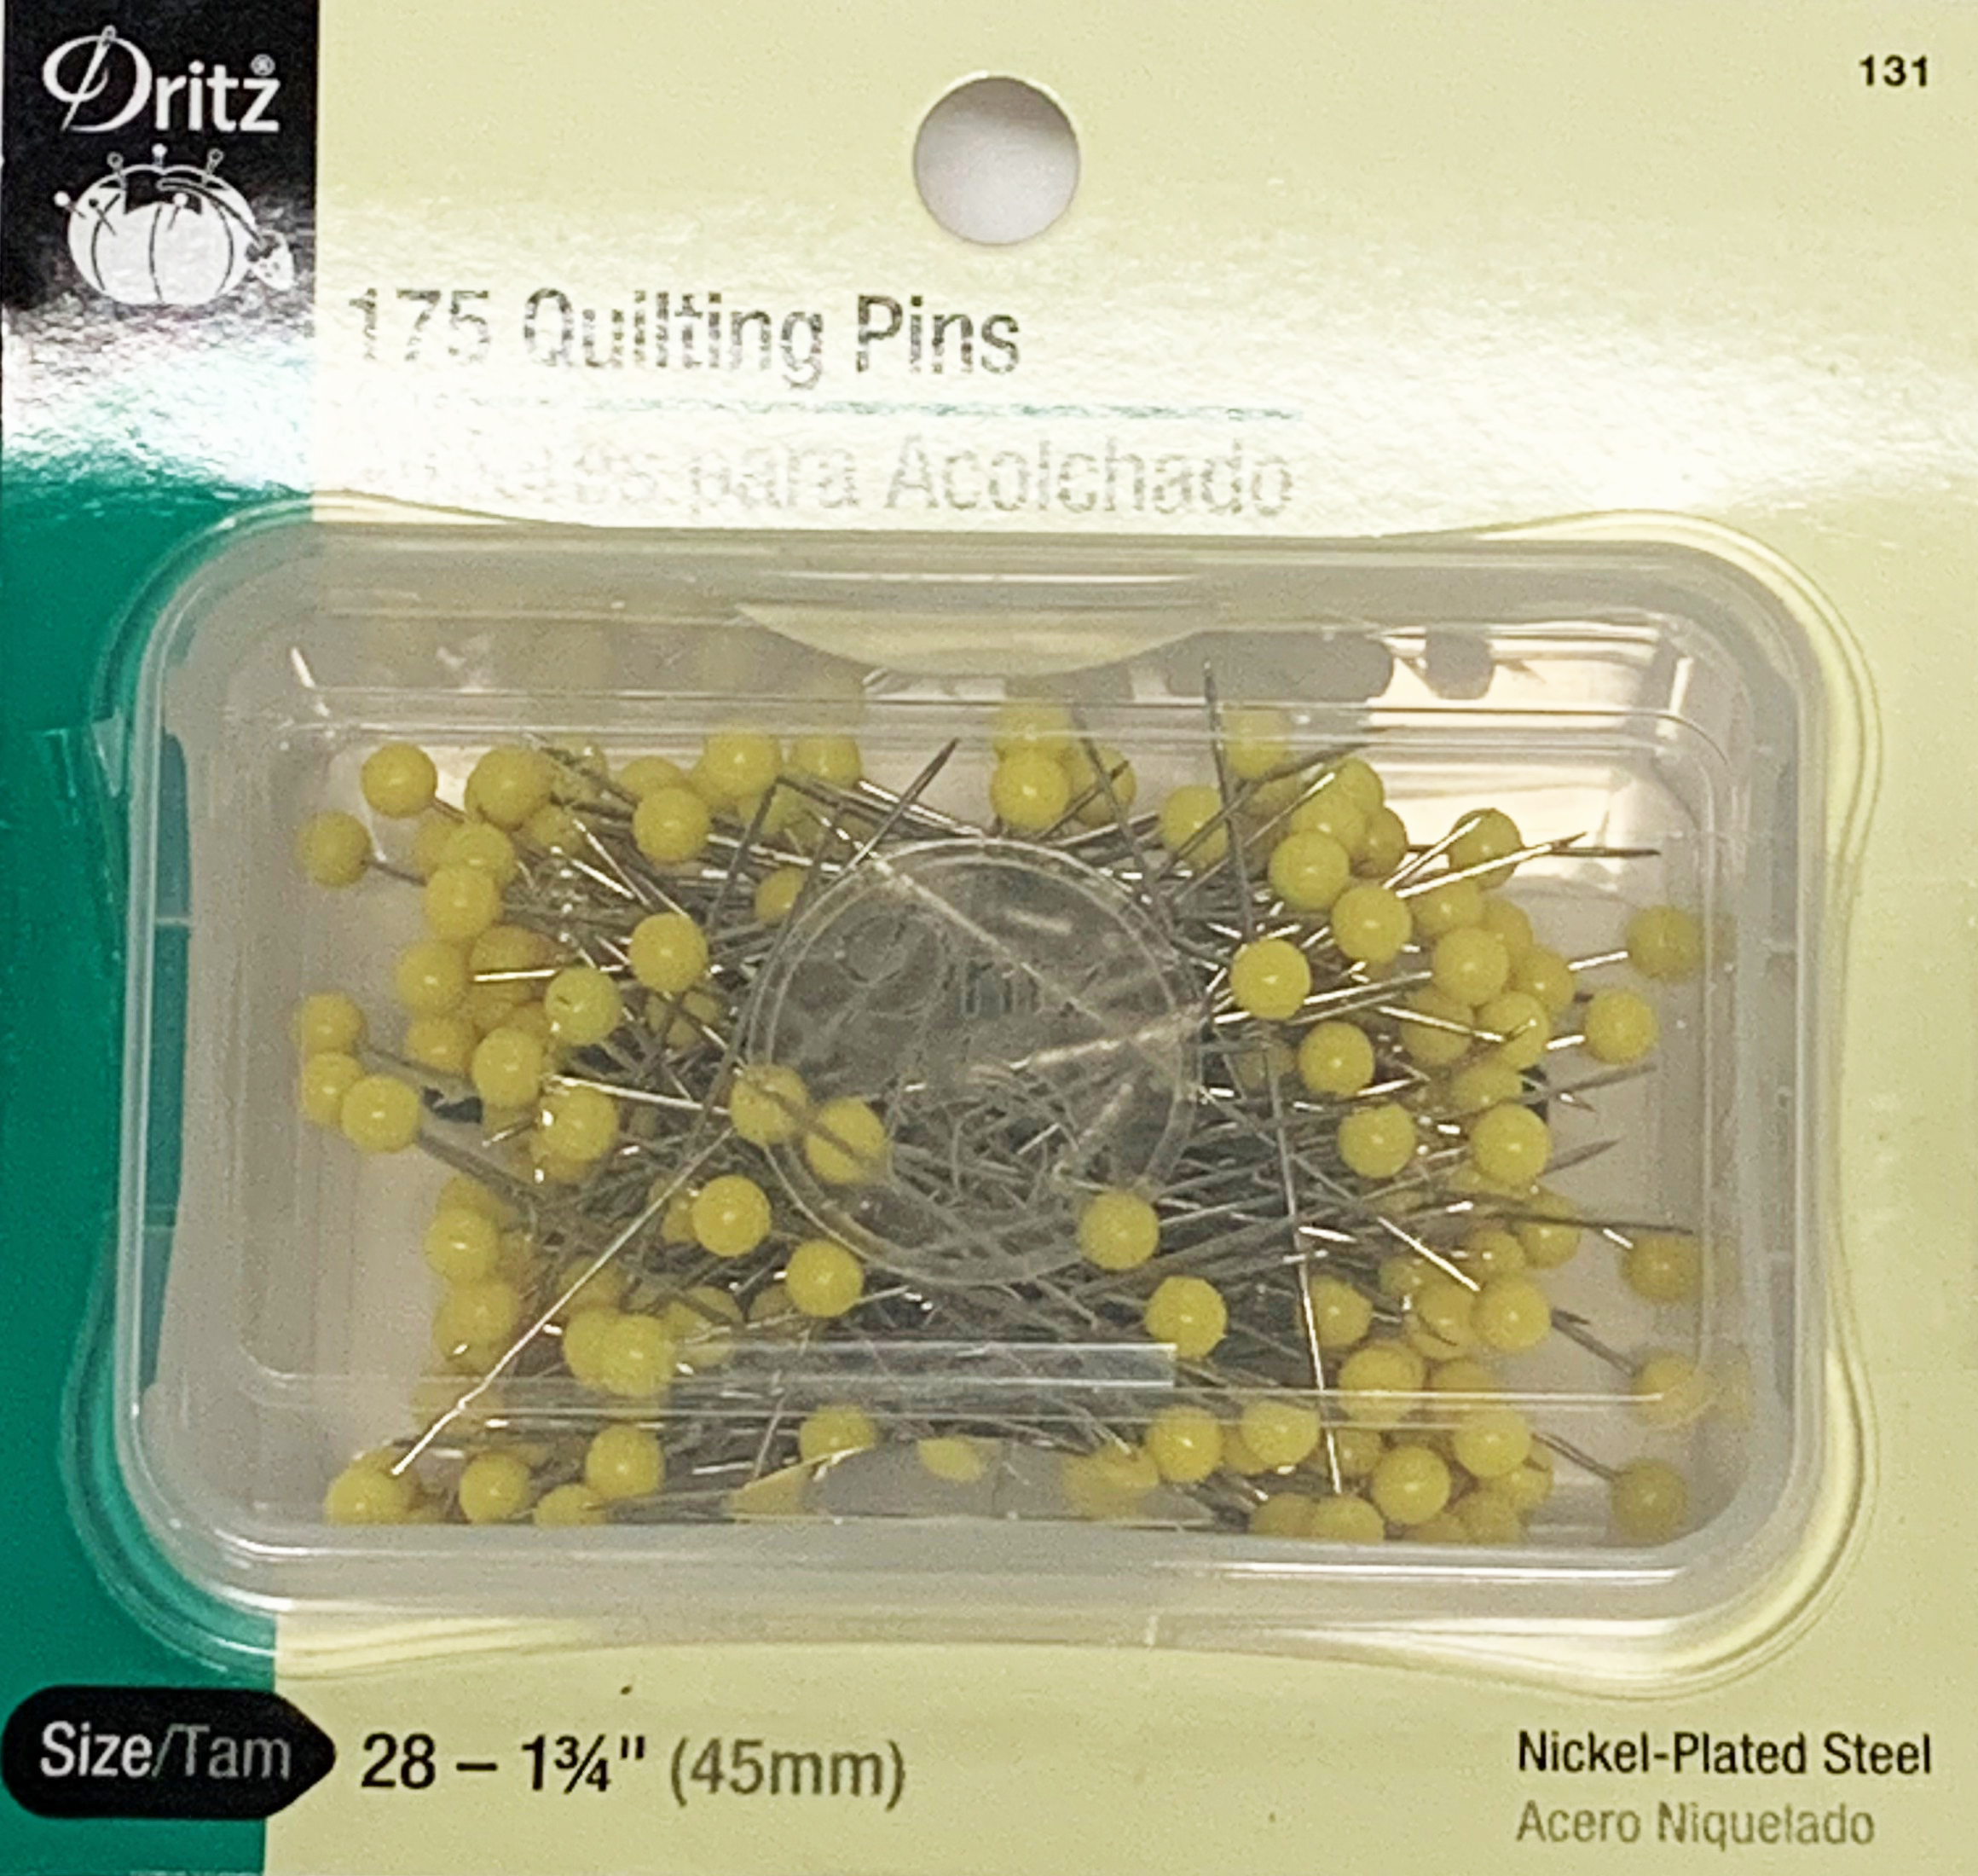 Dritz 131, 175 Quilting Pins